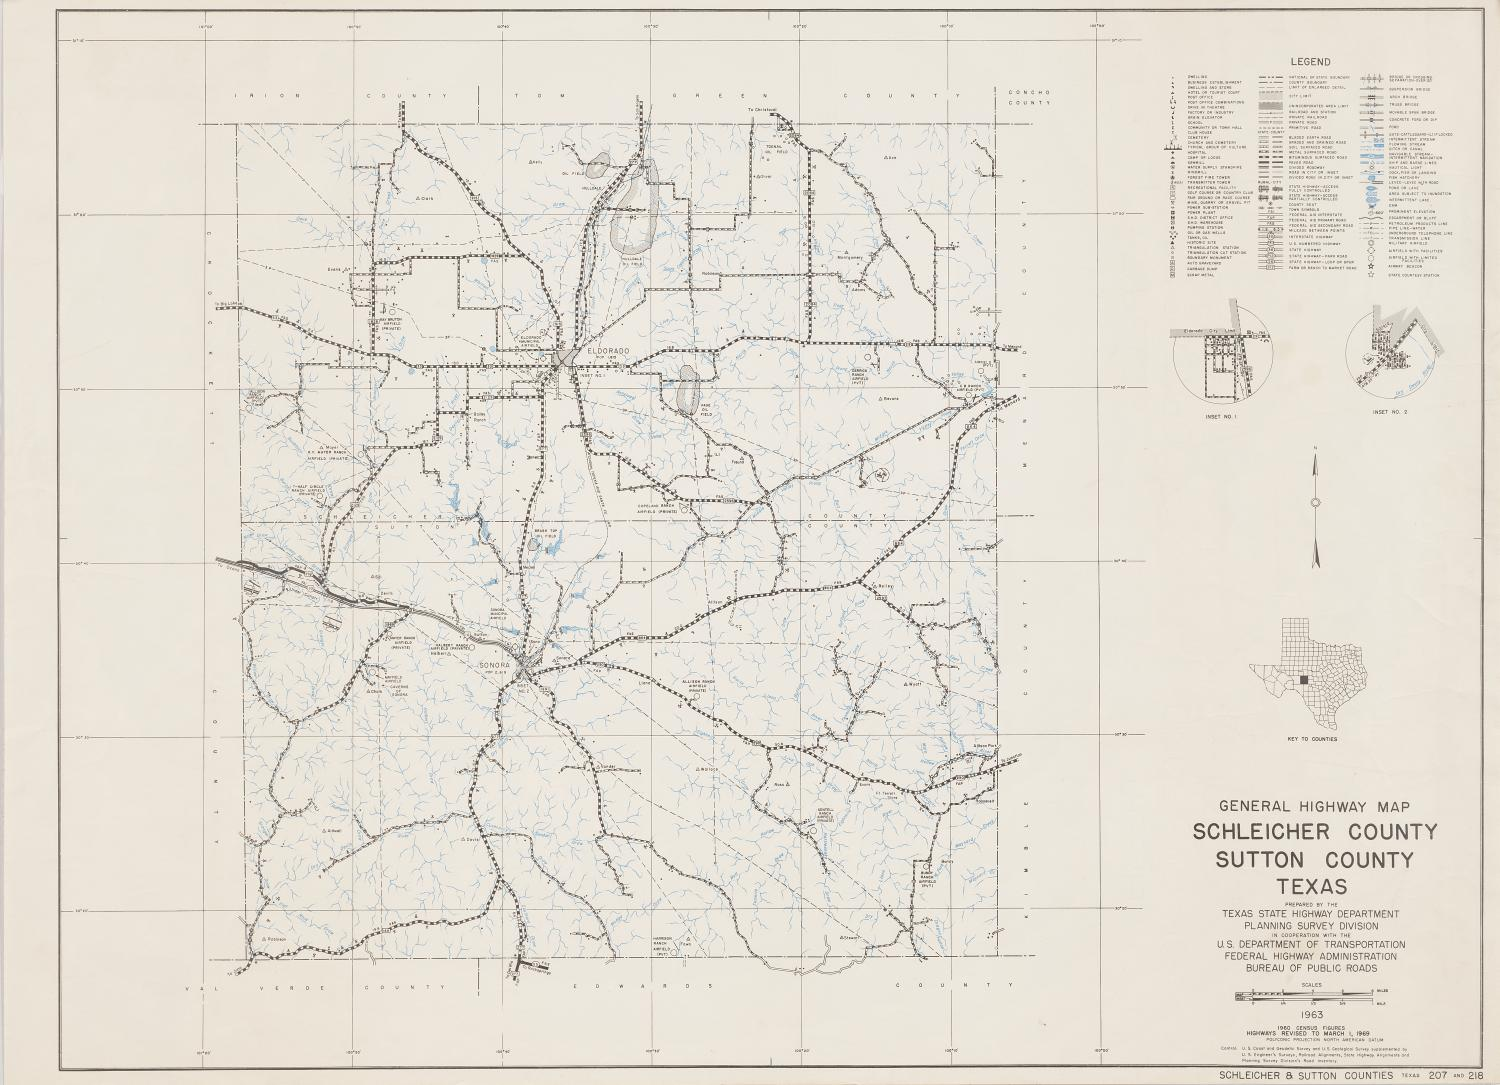 General Highway Map Schleicher County, Sutton County, Texas - The ...